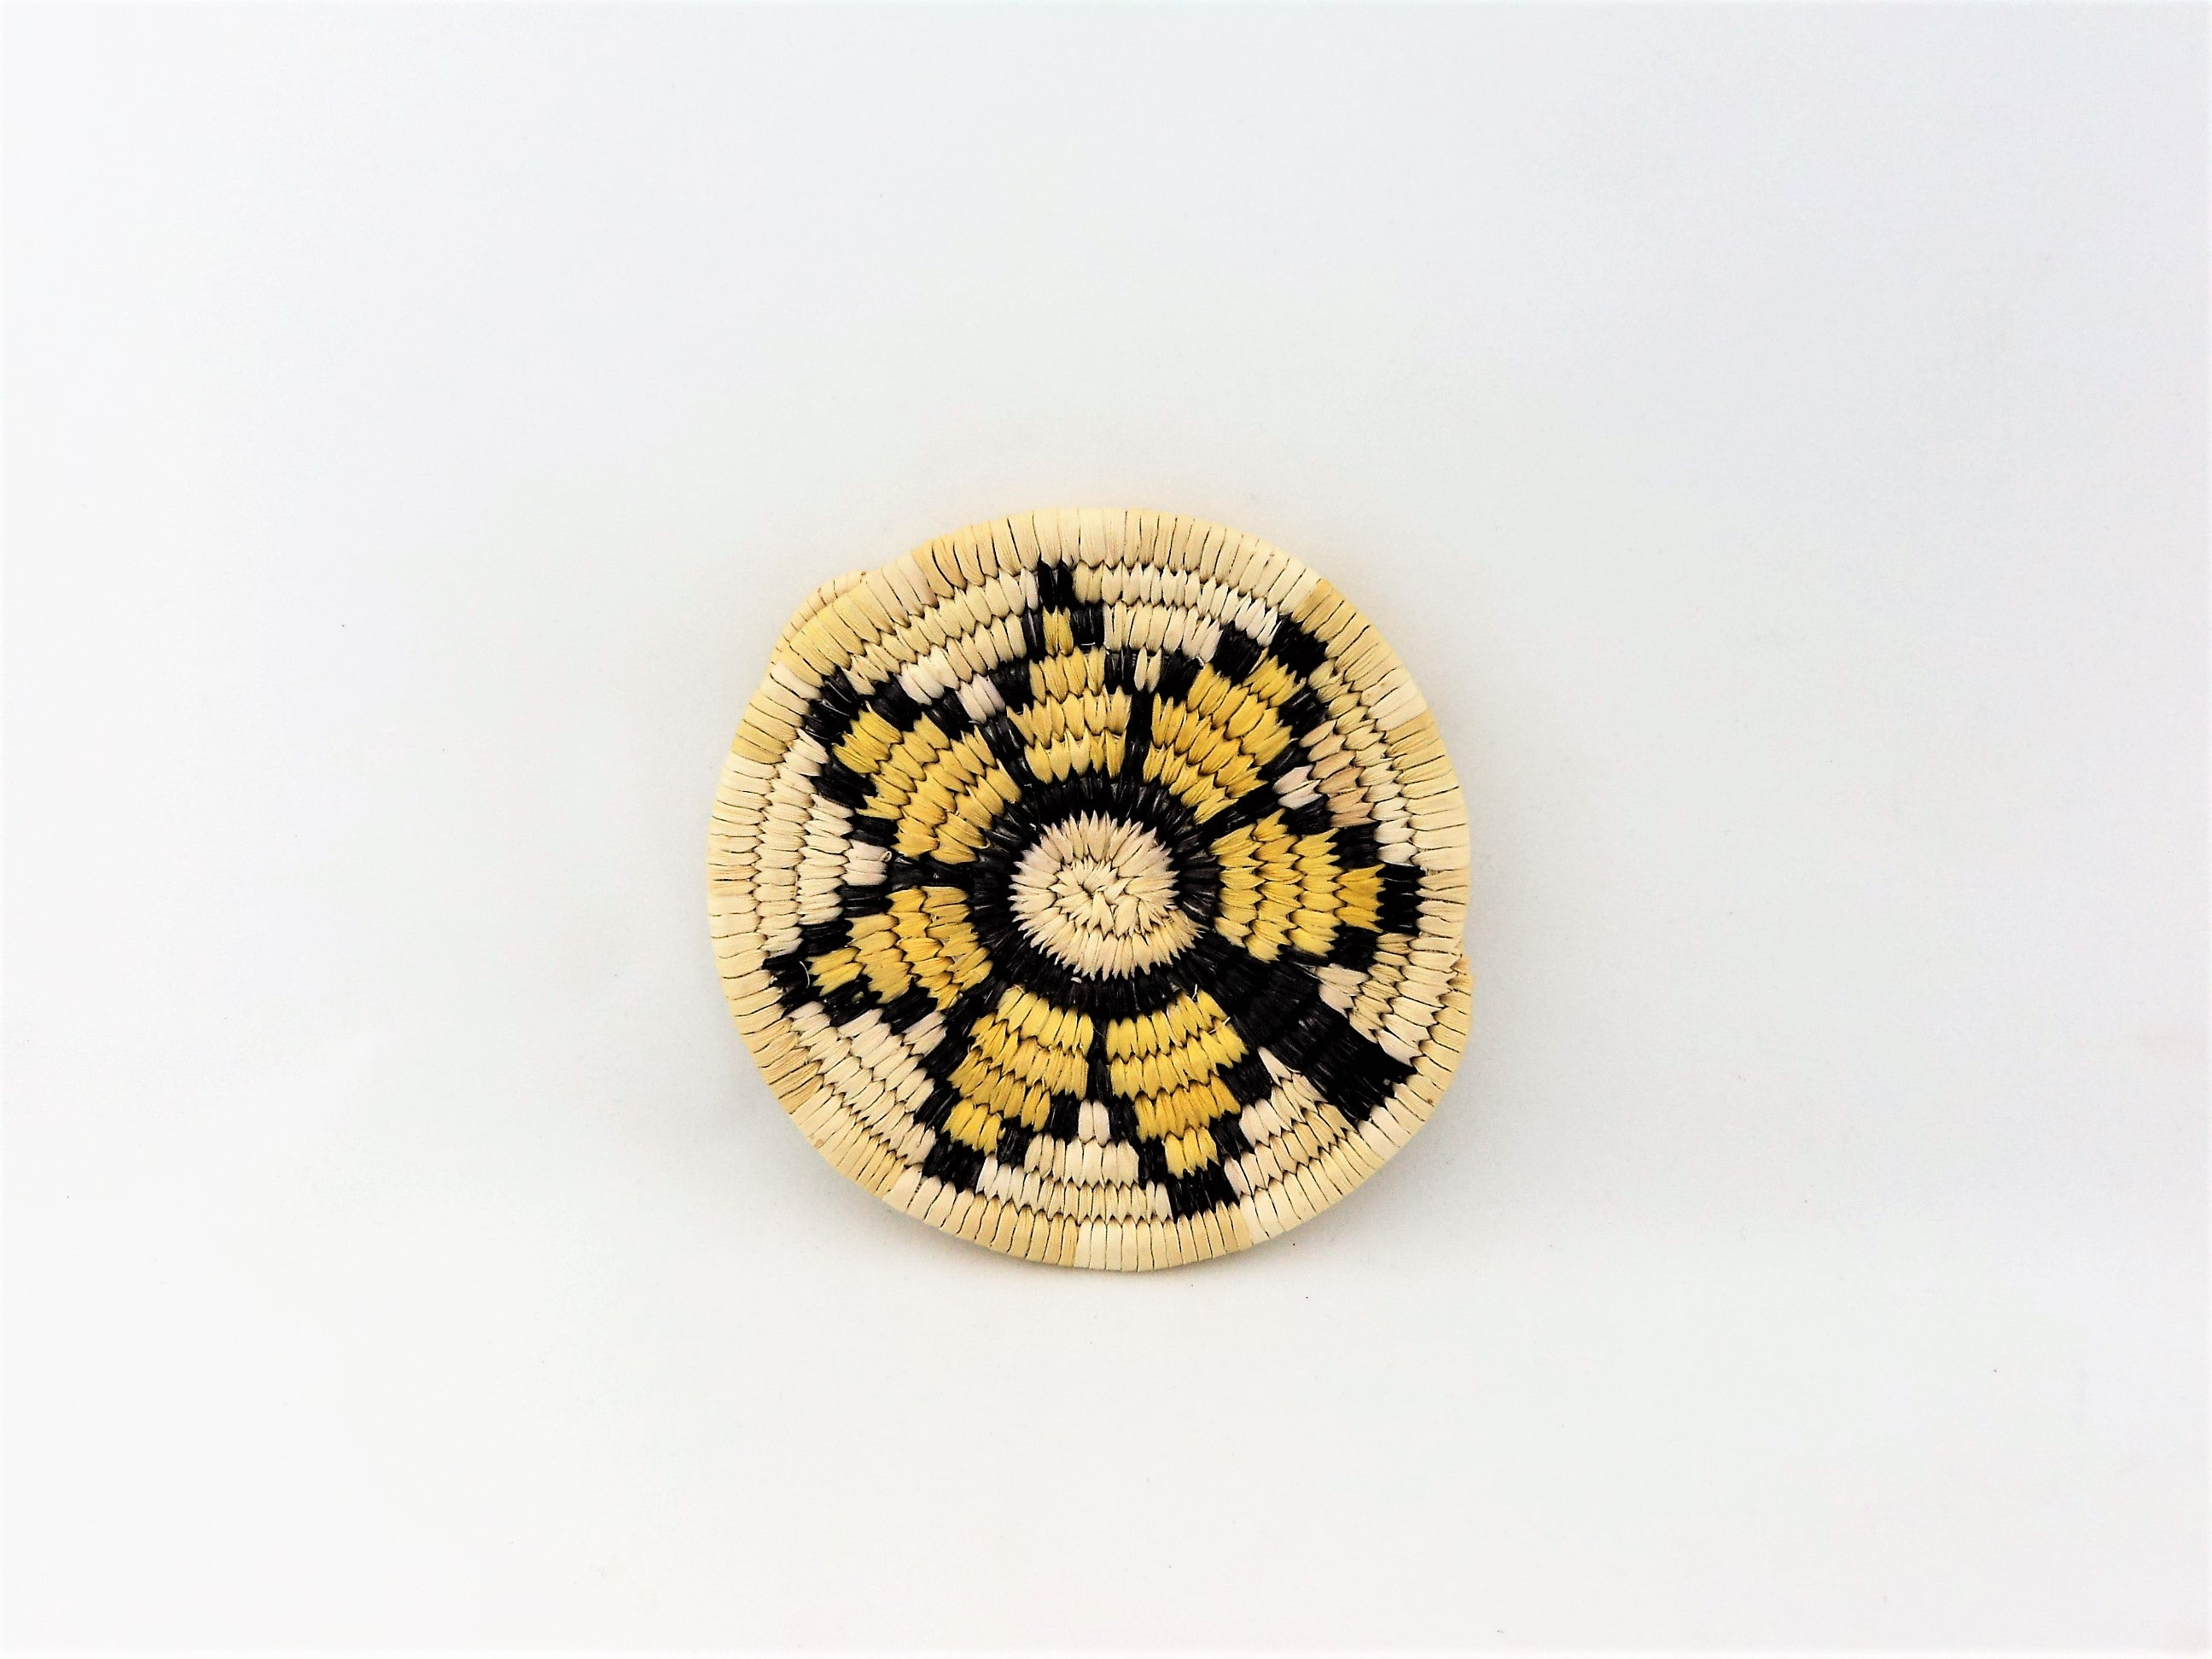 Hopi Mini Polychrome Coil Plaque